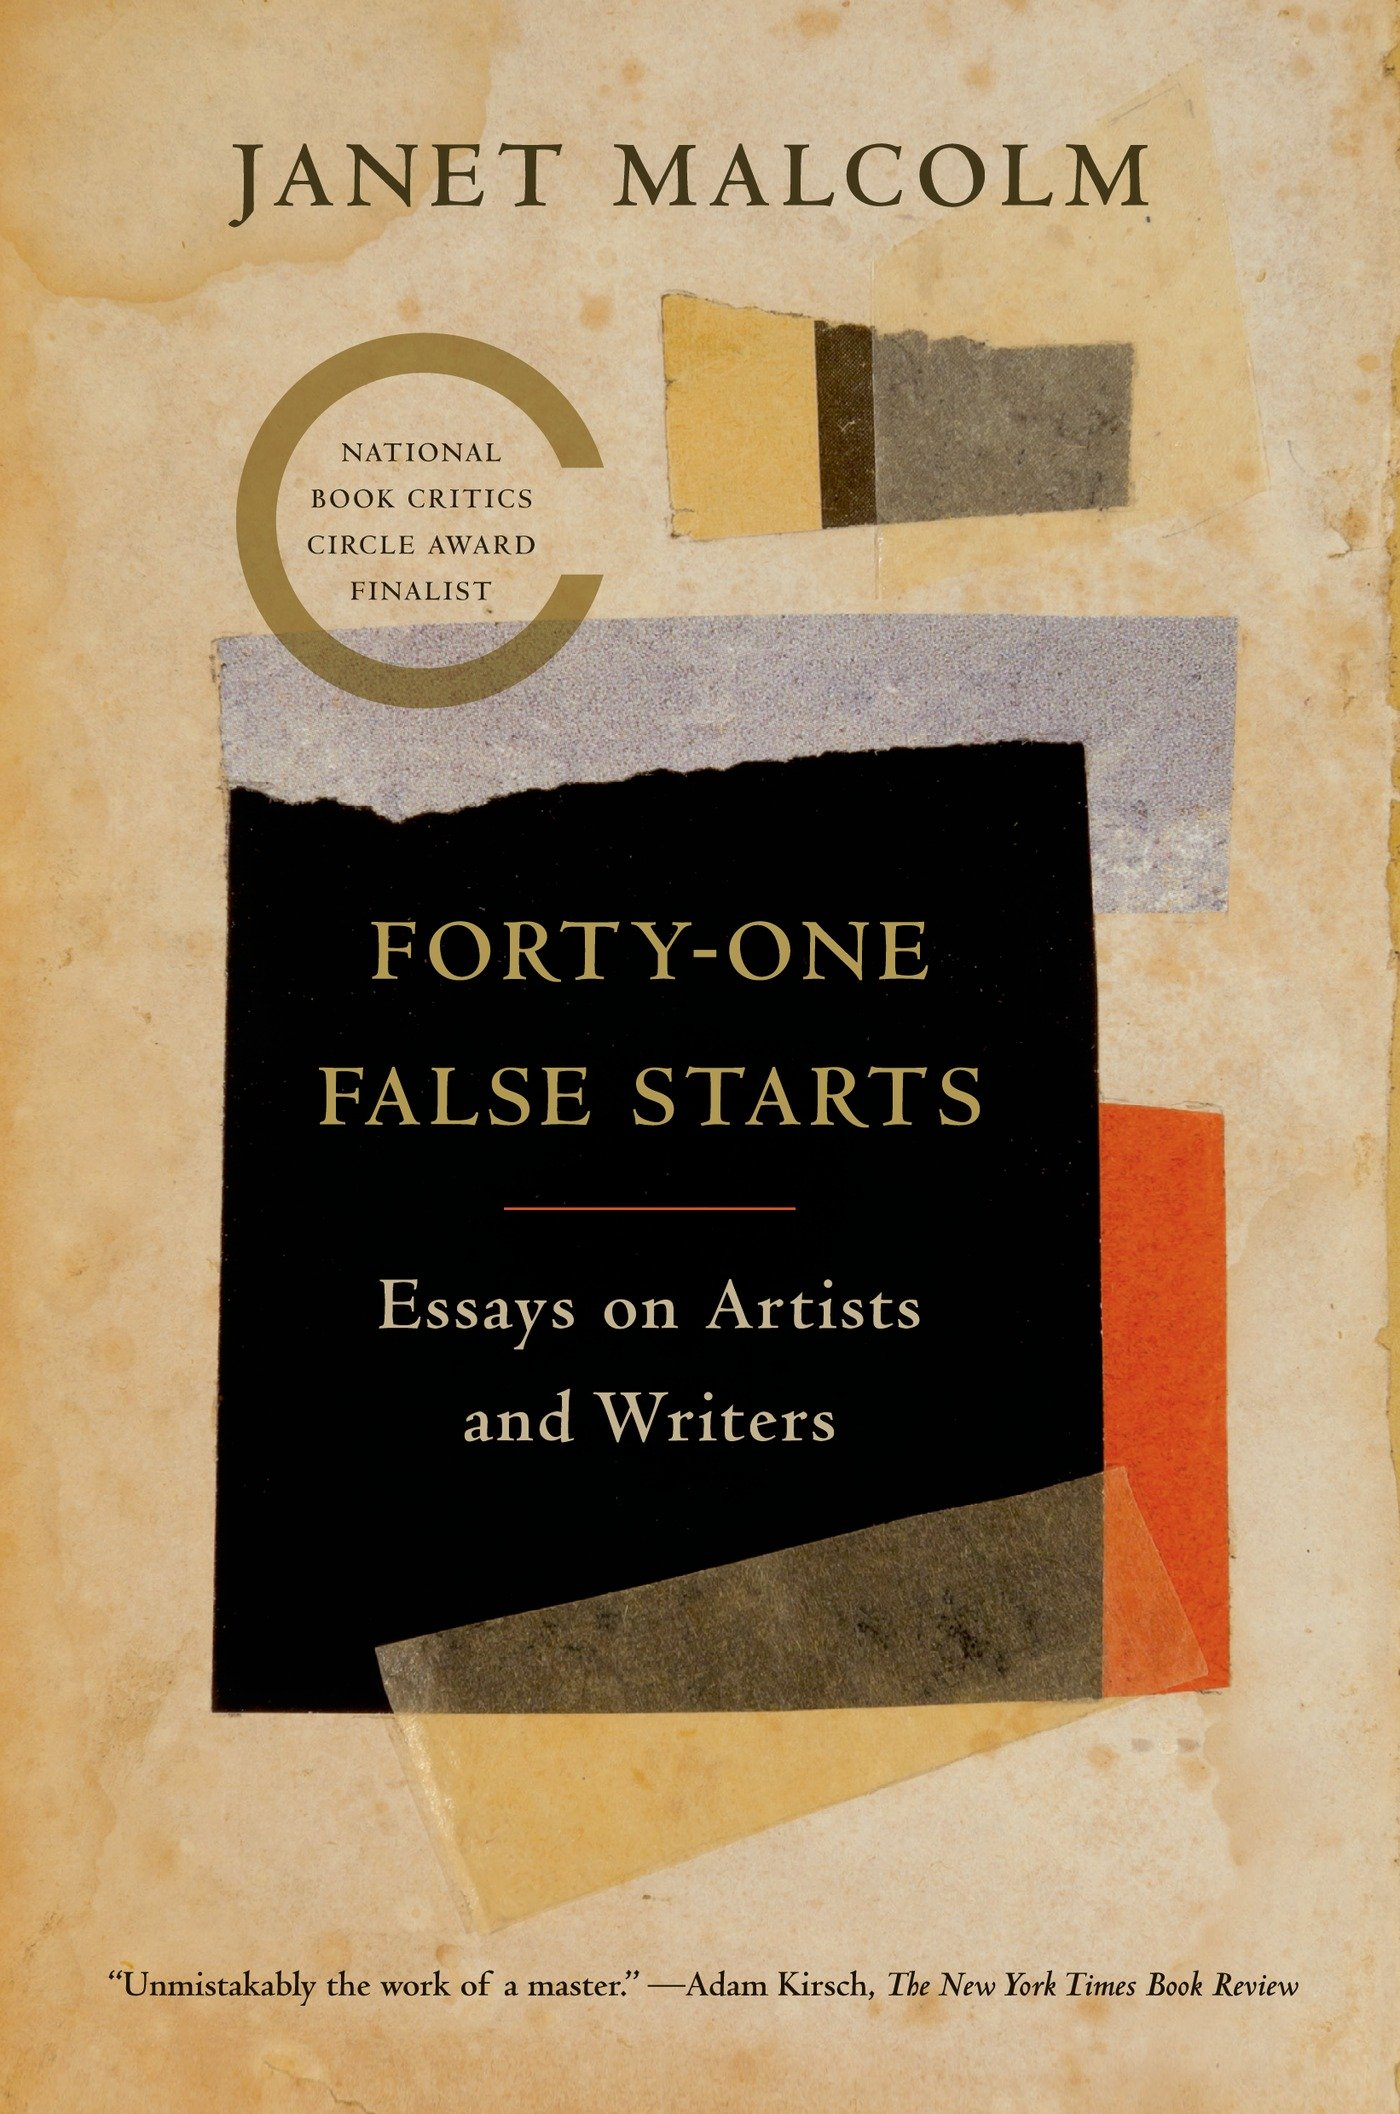 forty one false starts essays on artists and writers amazon co forty one false starts essays on artists and writers amazon co uk janet malcolm 9780374534585 books